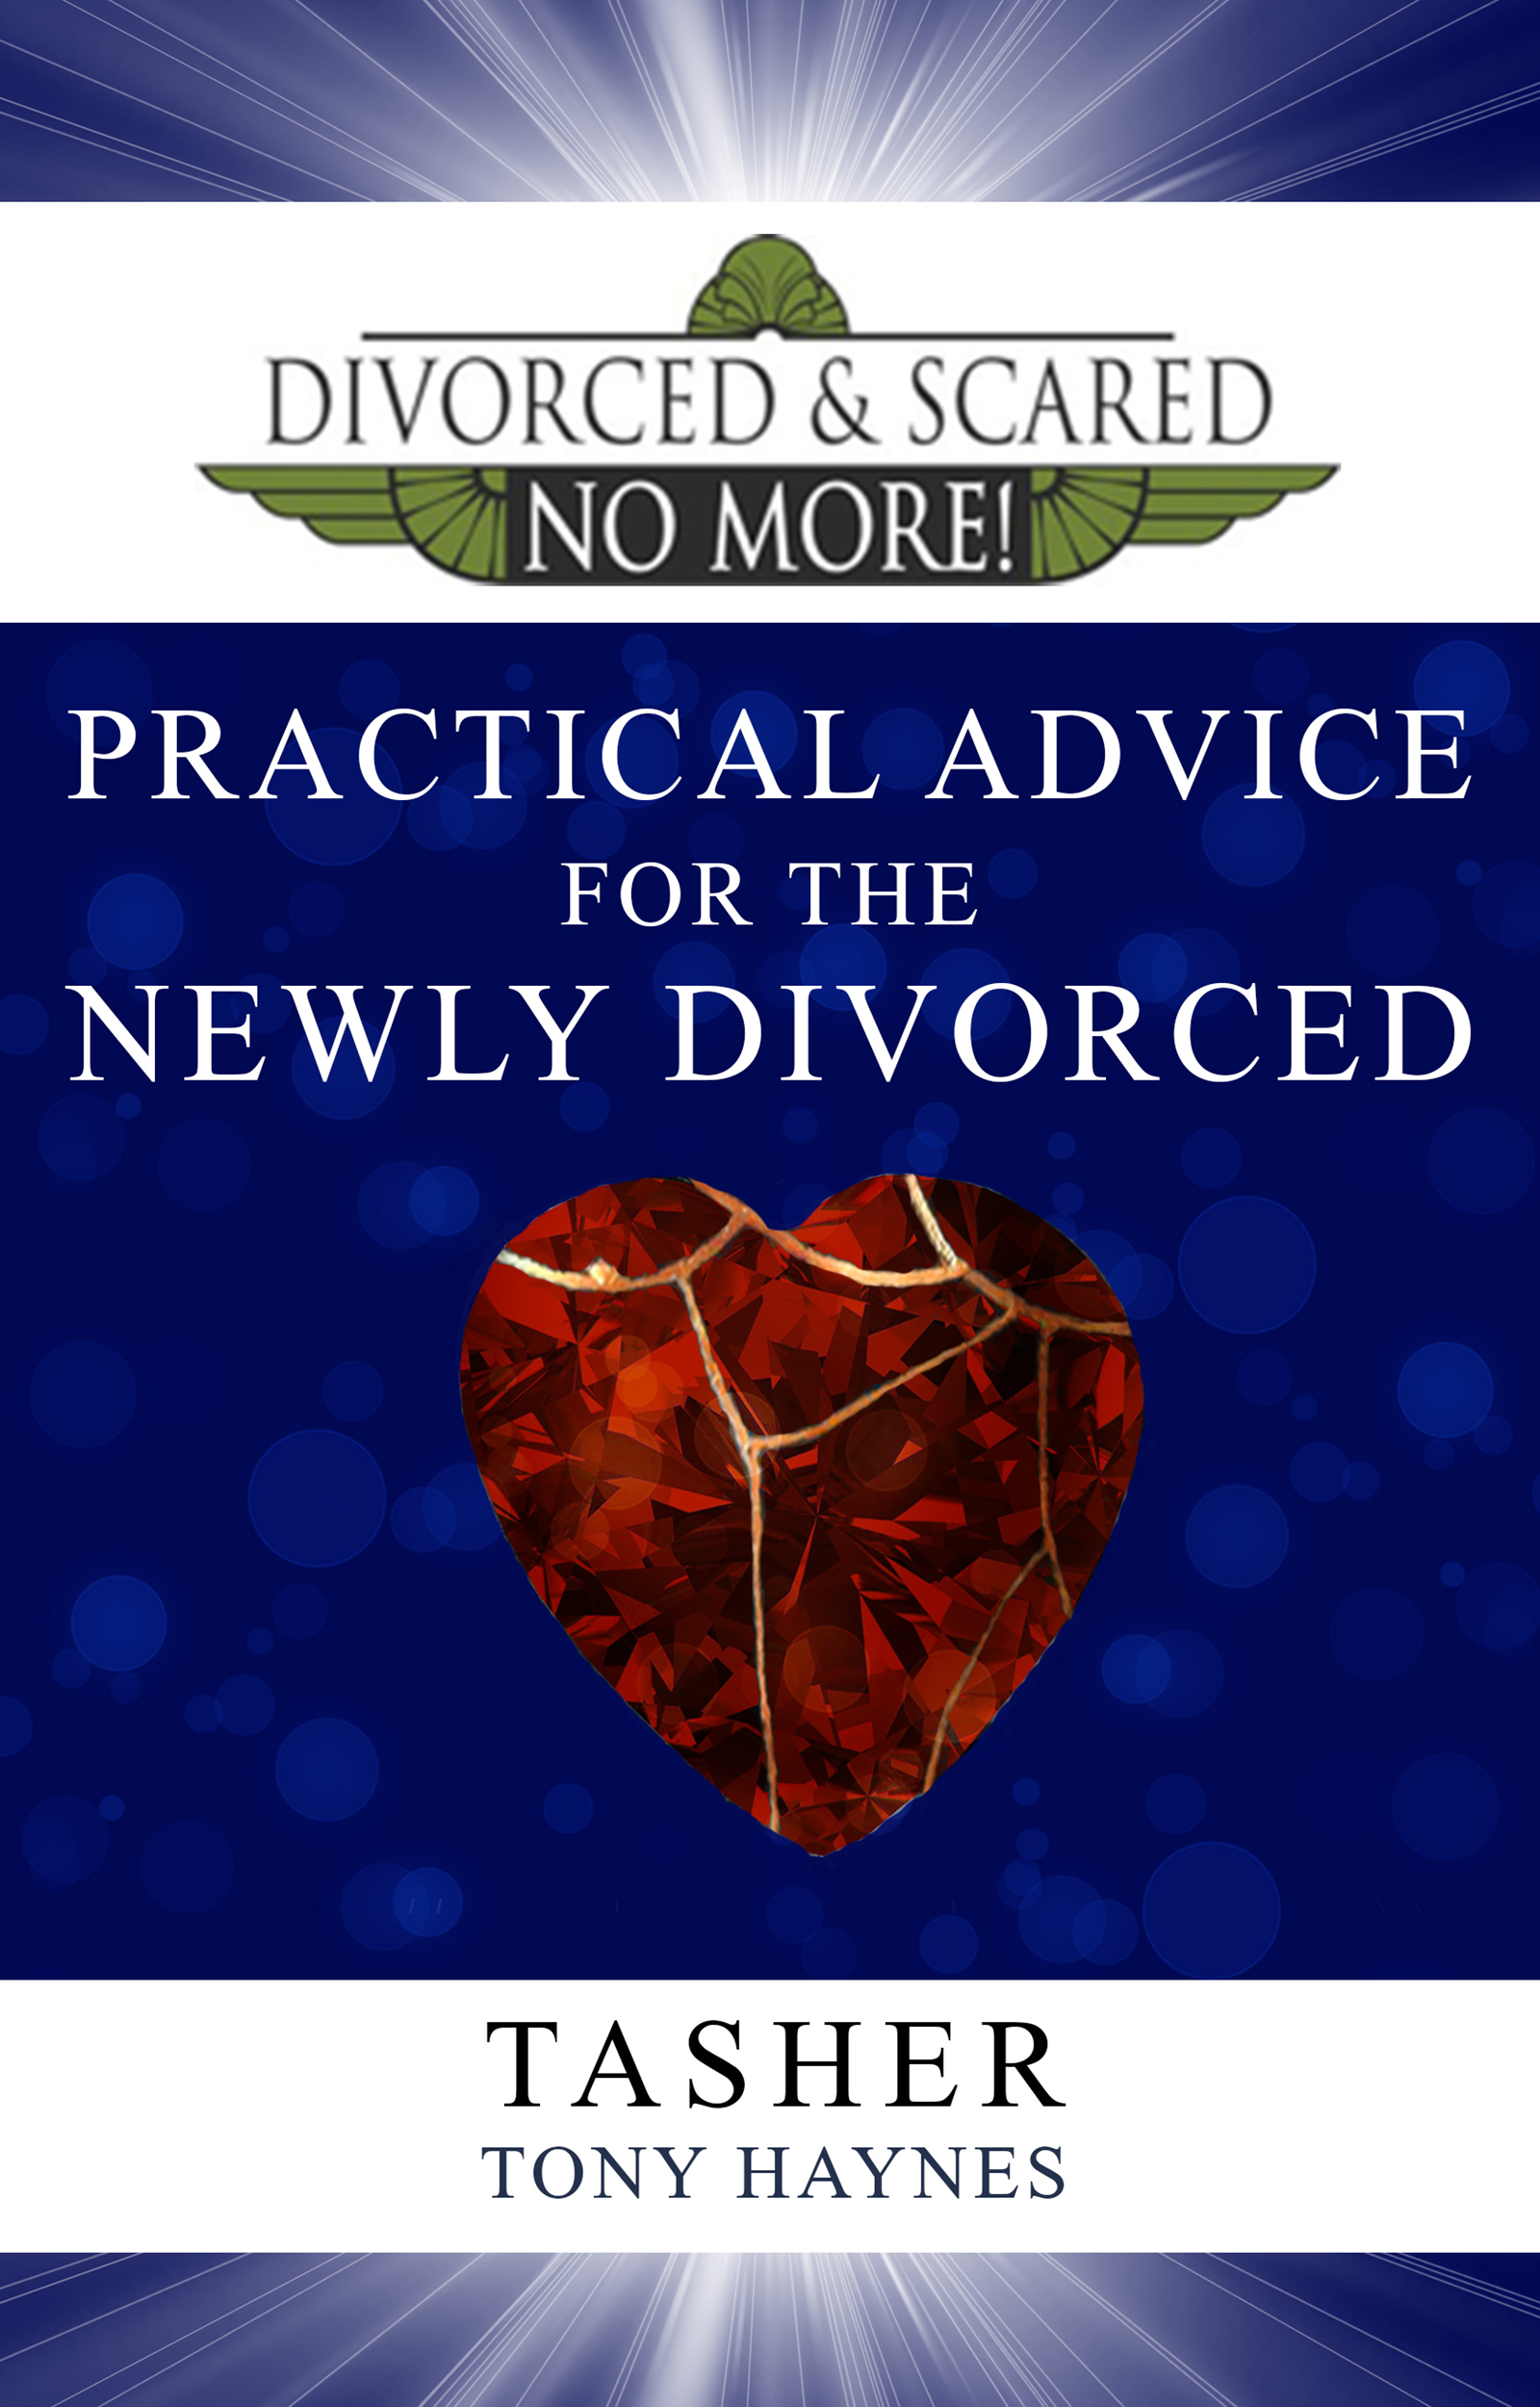 Practical advice for the newly divorced